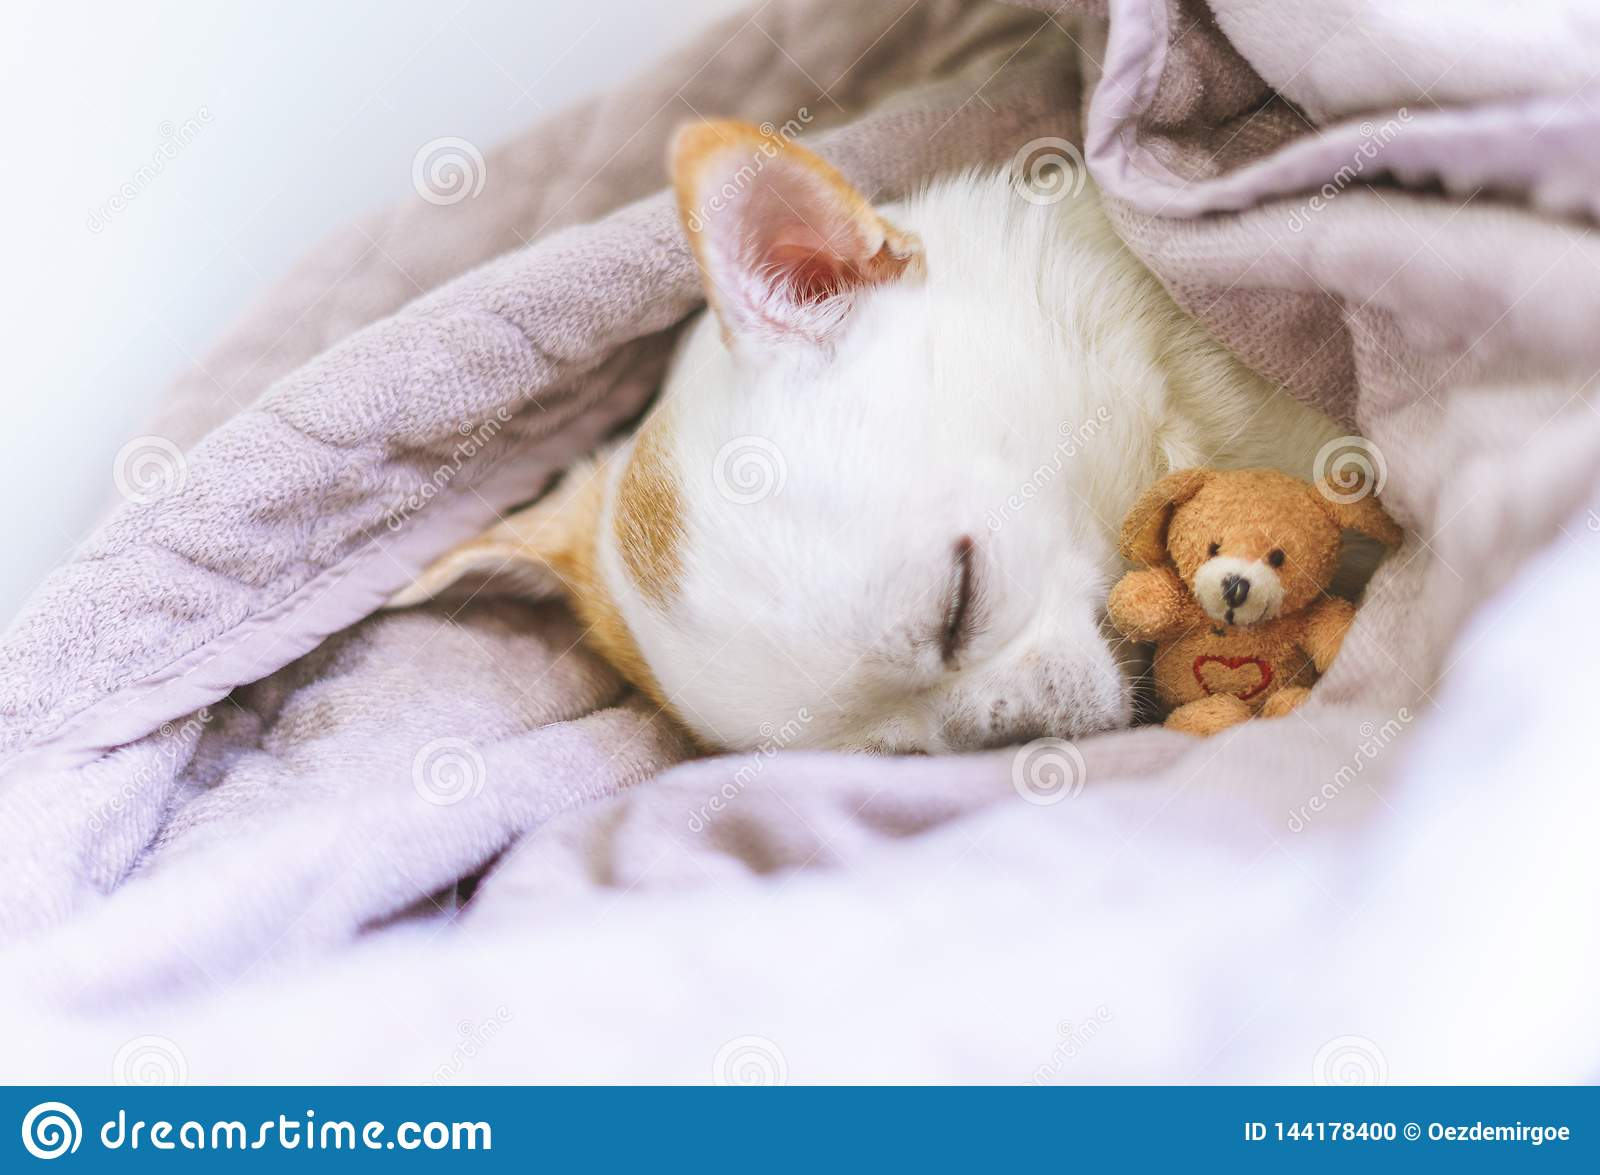 Photography of a cute sleeping chihuahua in basket with his teddy